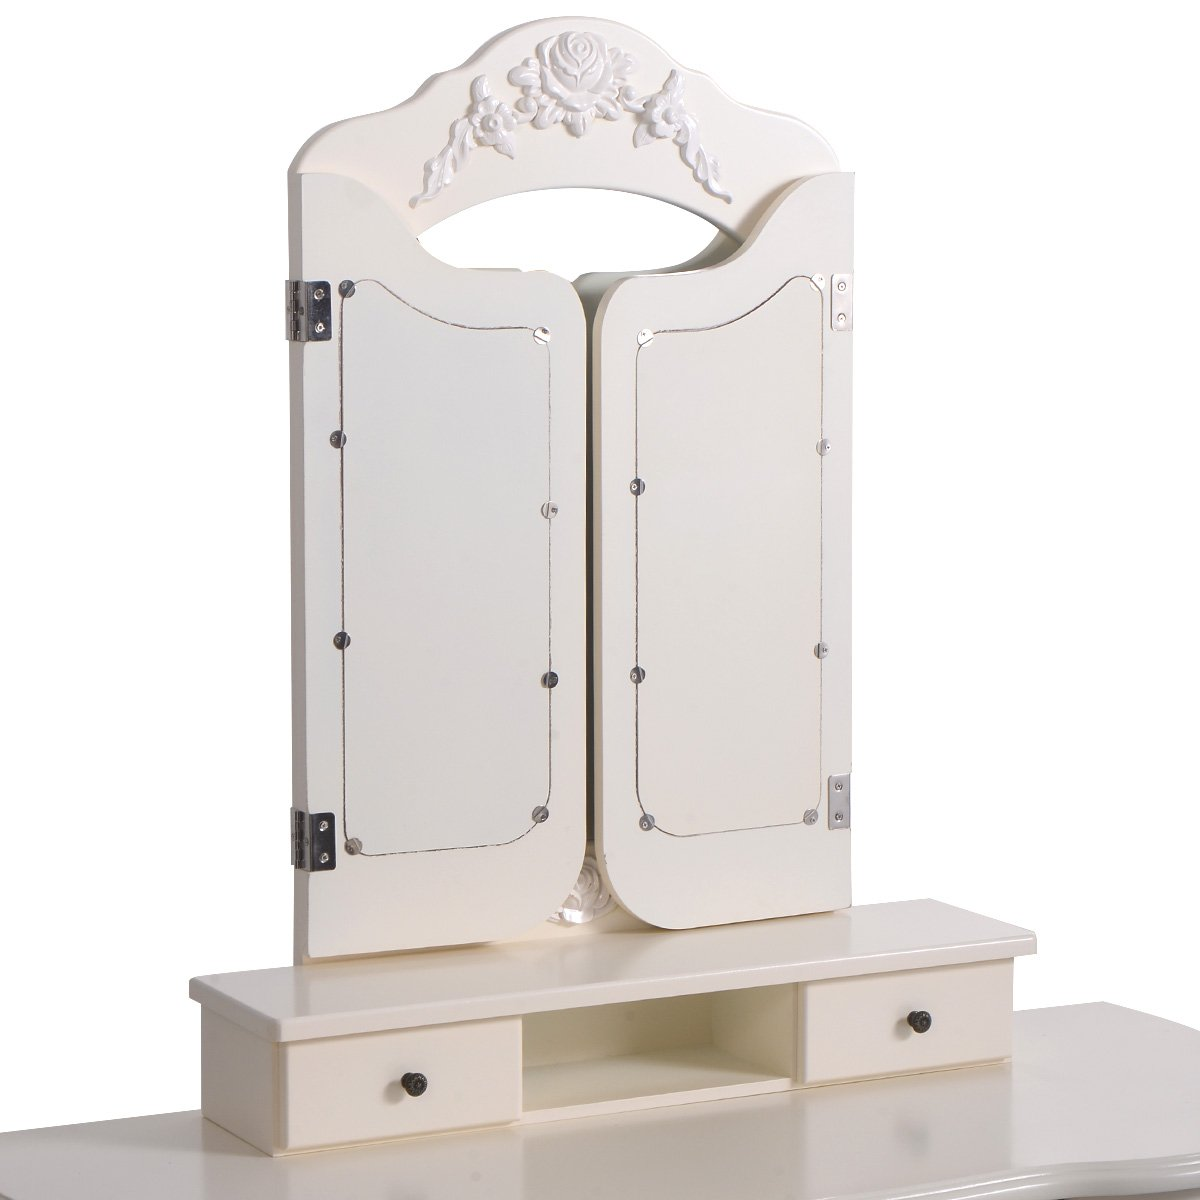 Giantex Tri Folding Vintage White Vanity Makeup Dressing Table Set 5 Drawers &stool 3